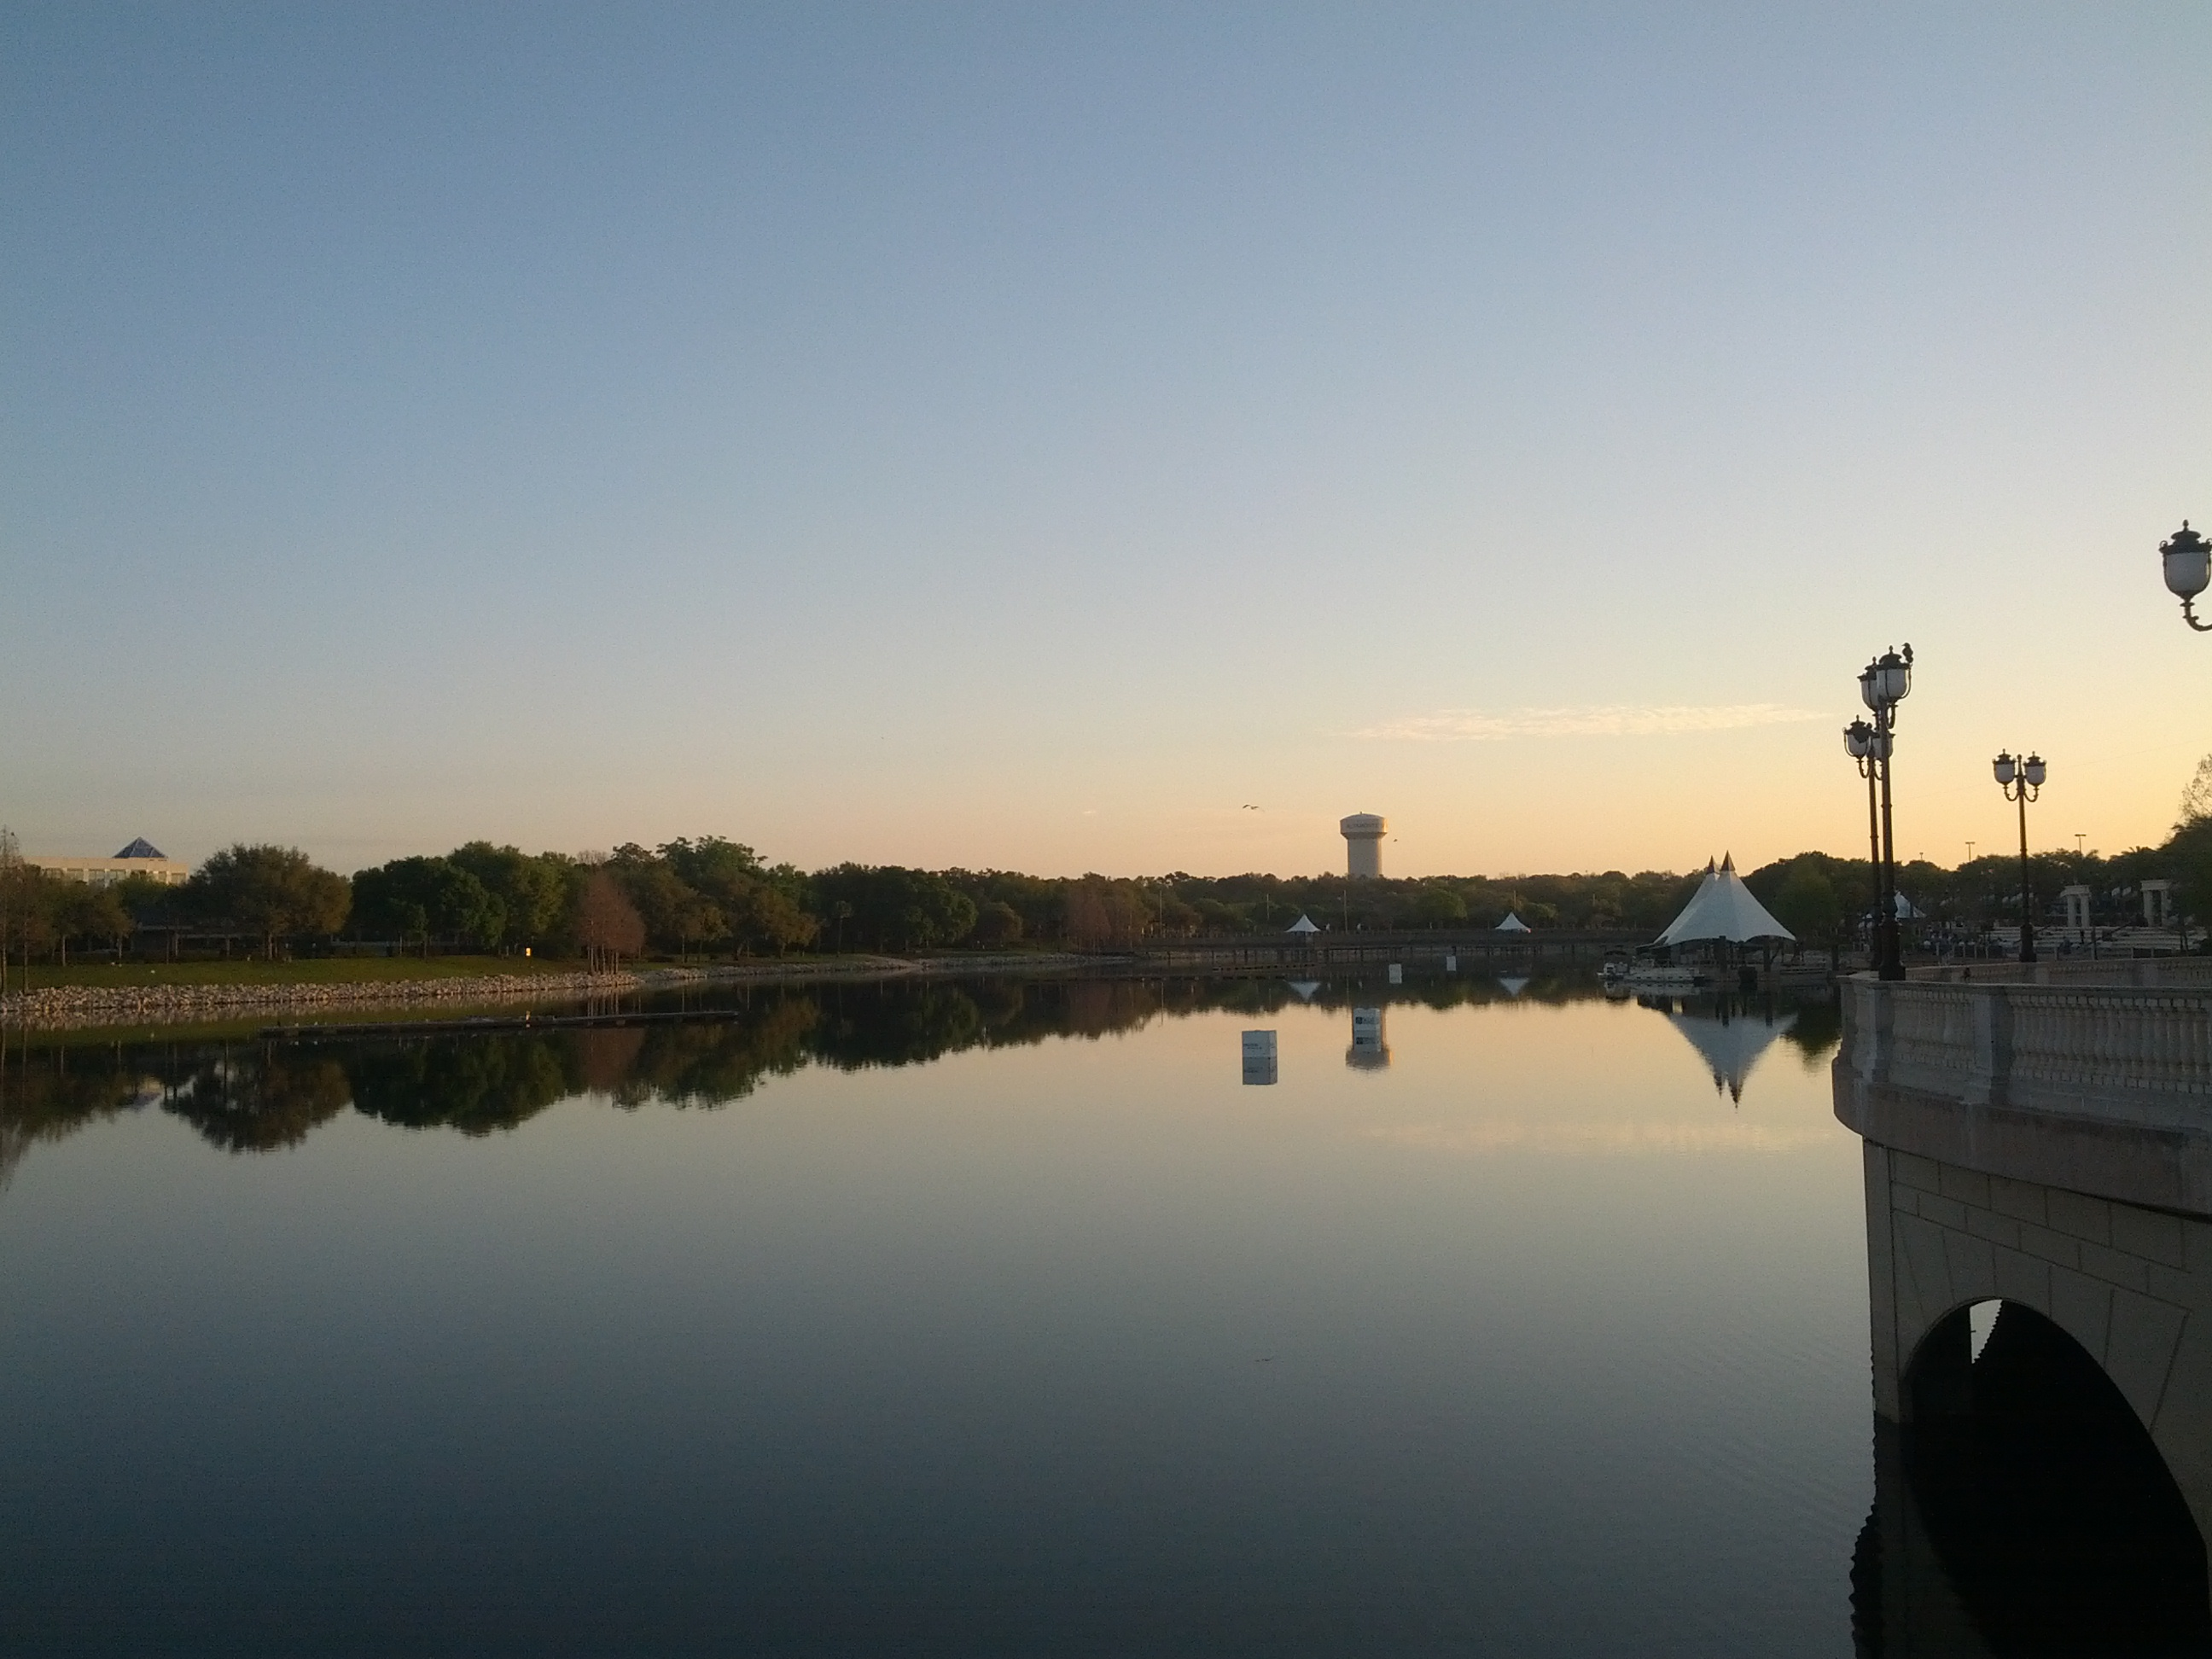 Lac of Cranes Roost Park